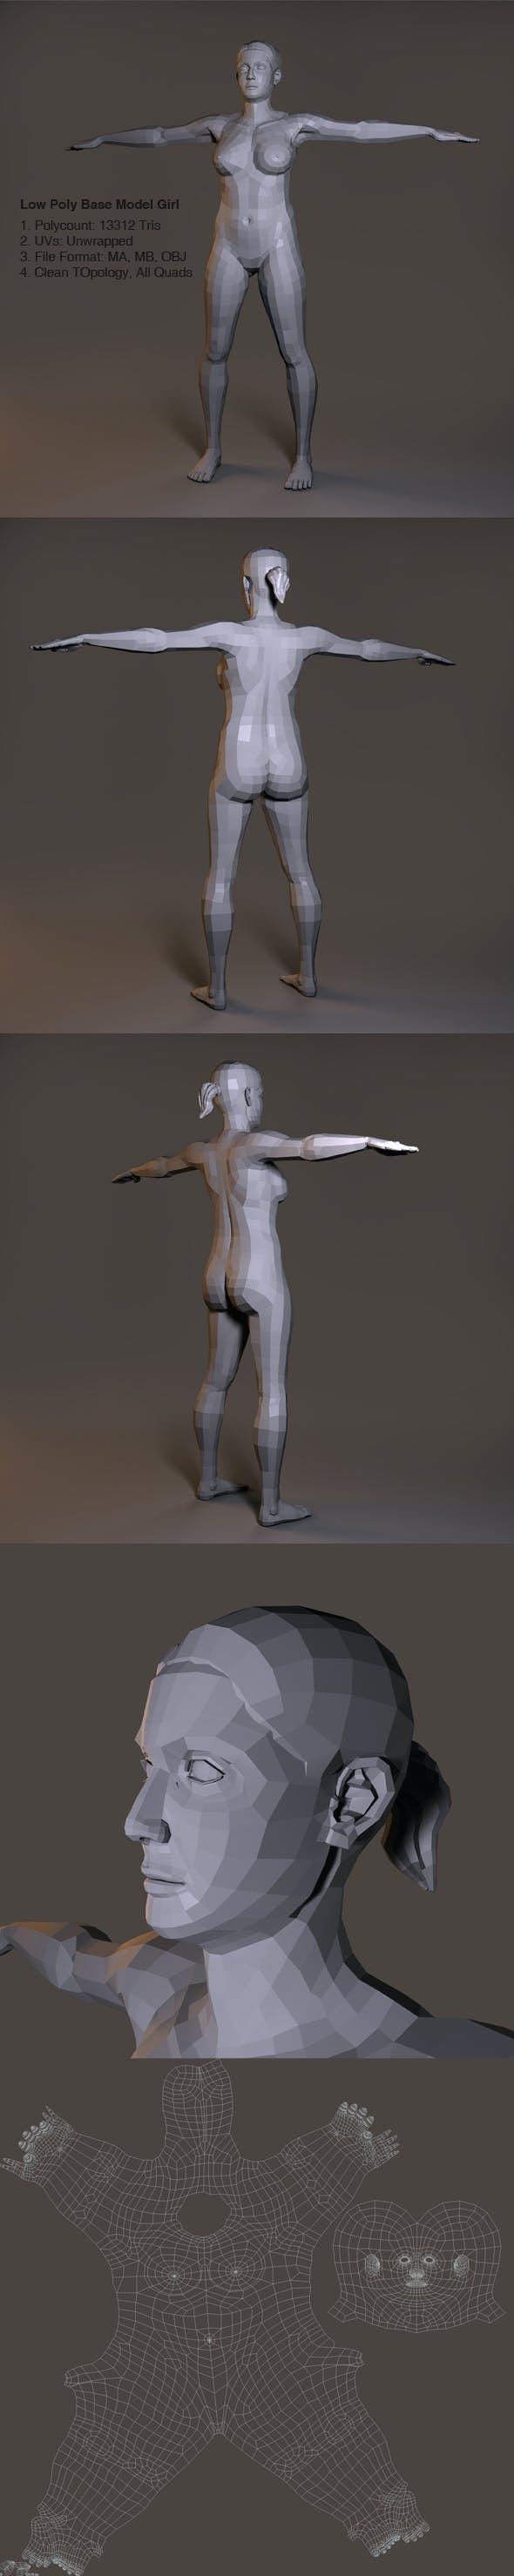 Low Poly Base Model Female - 3DOcean Item for Sale